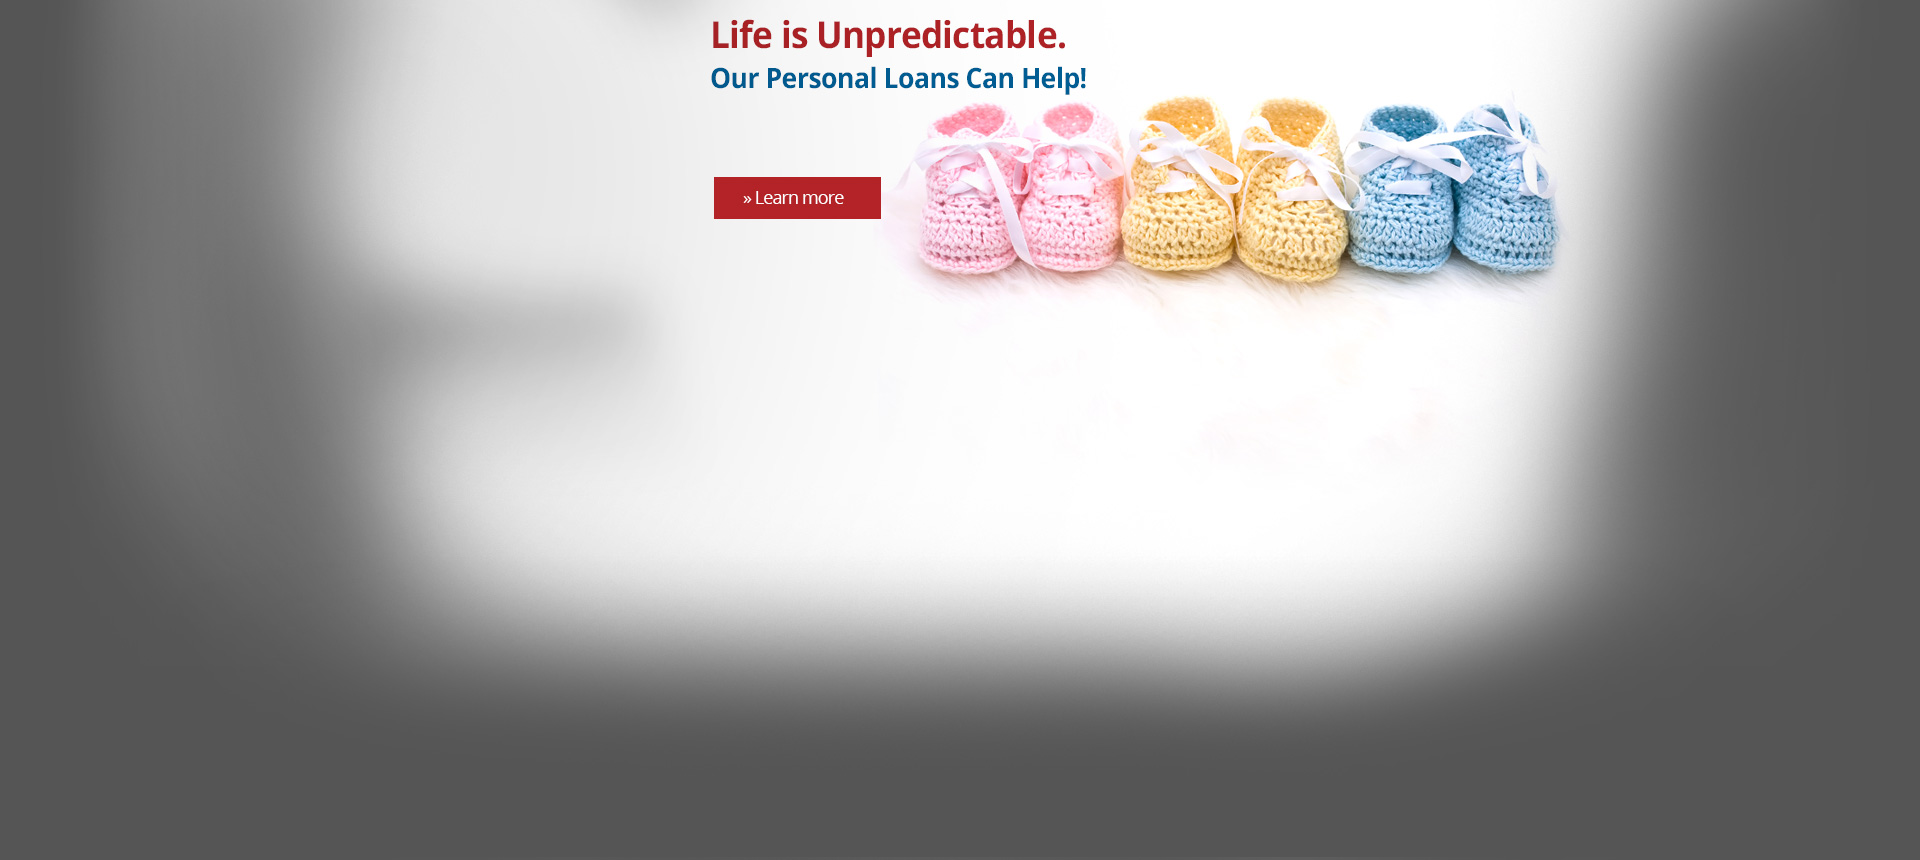 Life is Unpredictable Personal Loans